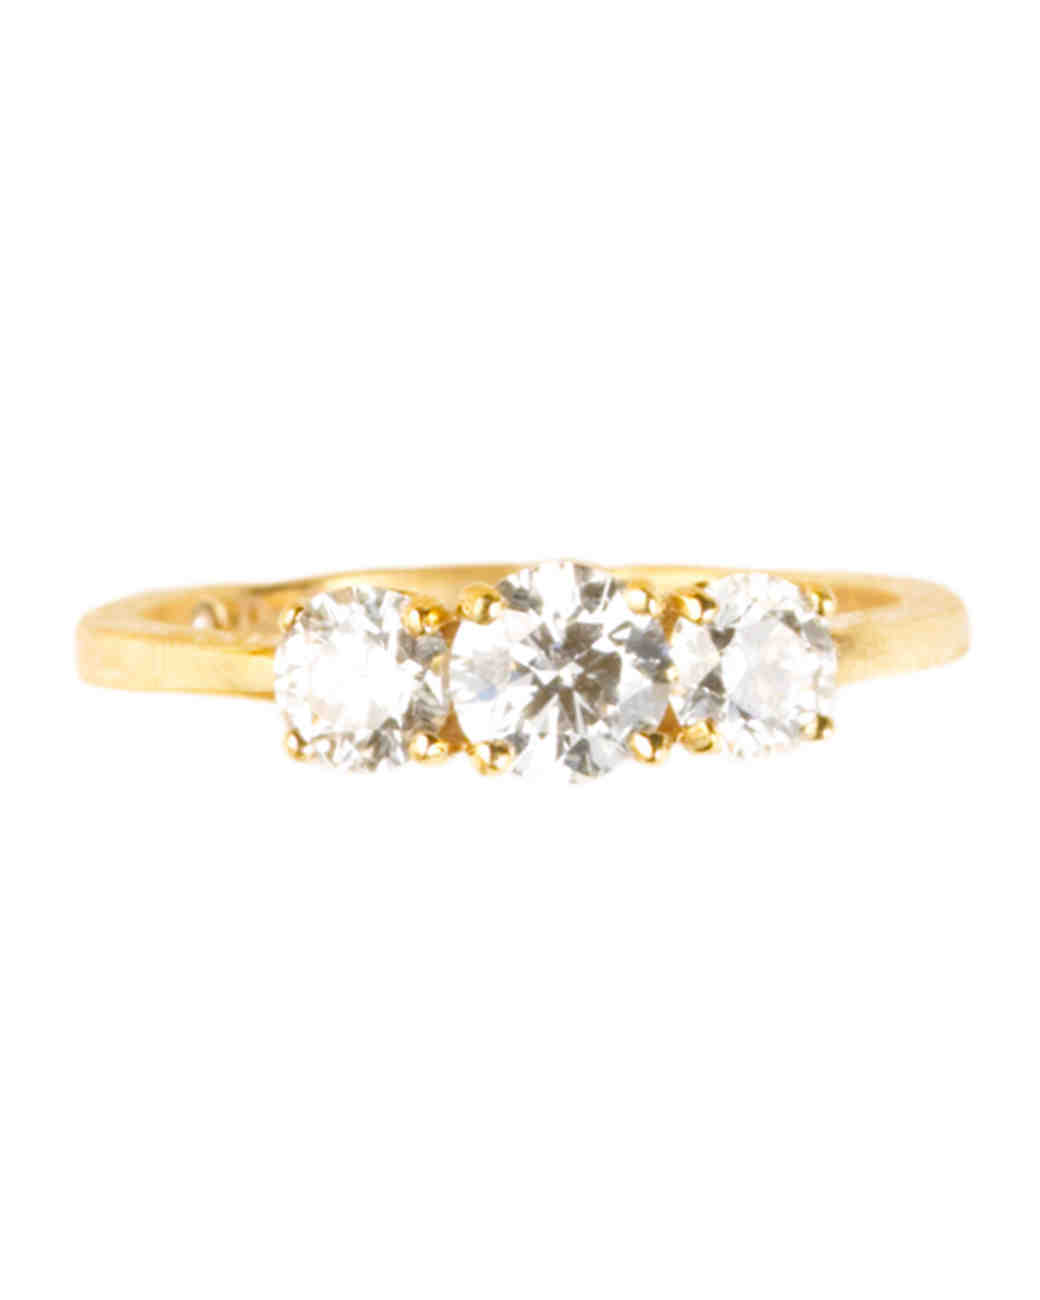 msw_sum10_yellow_ring3_debeers.jpg